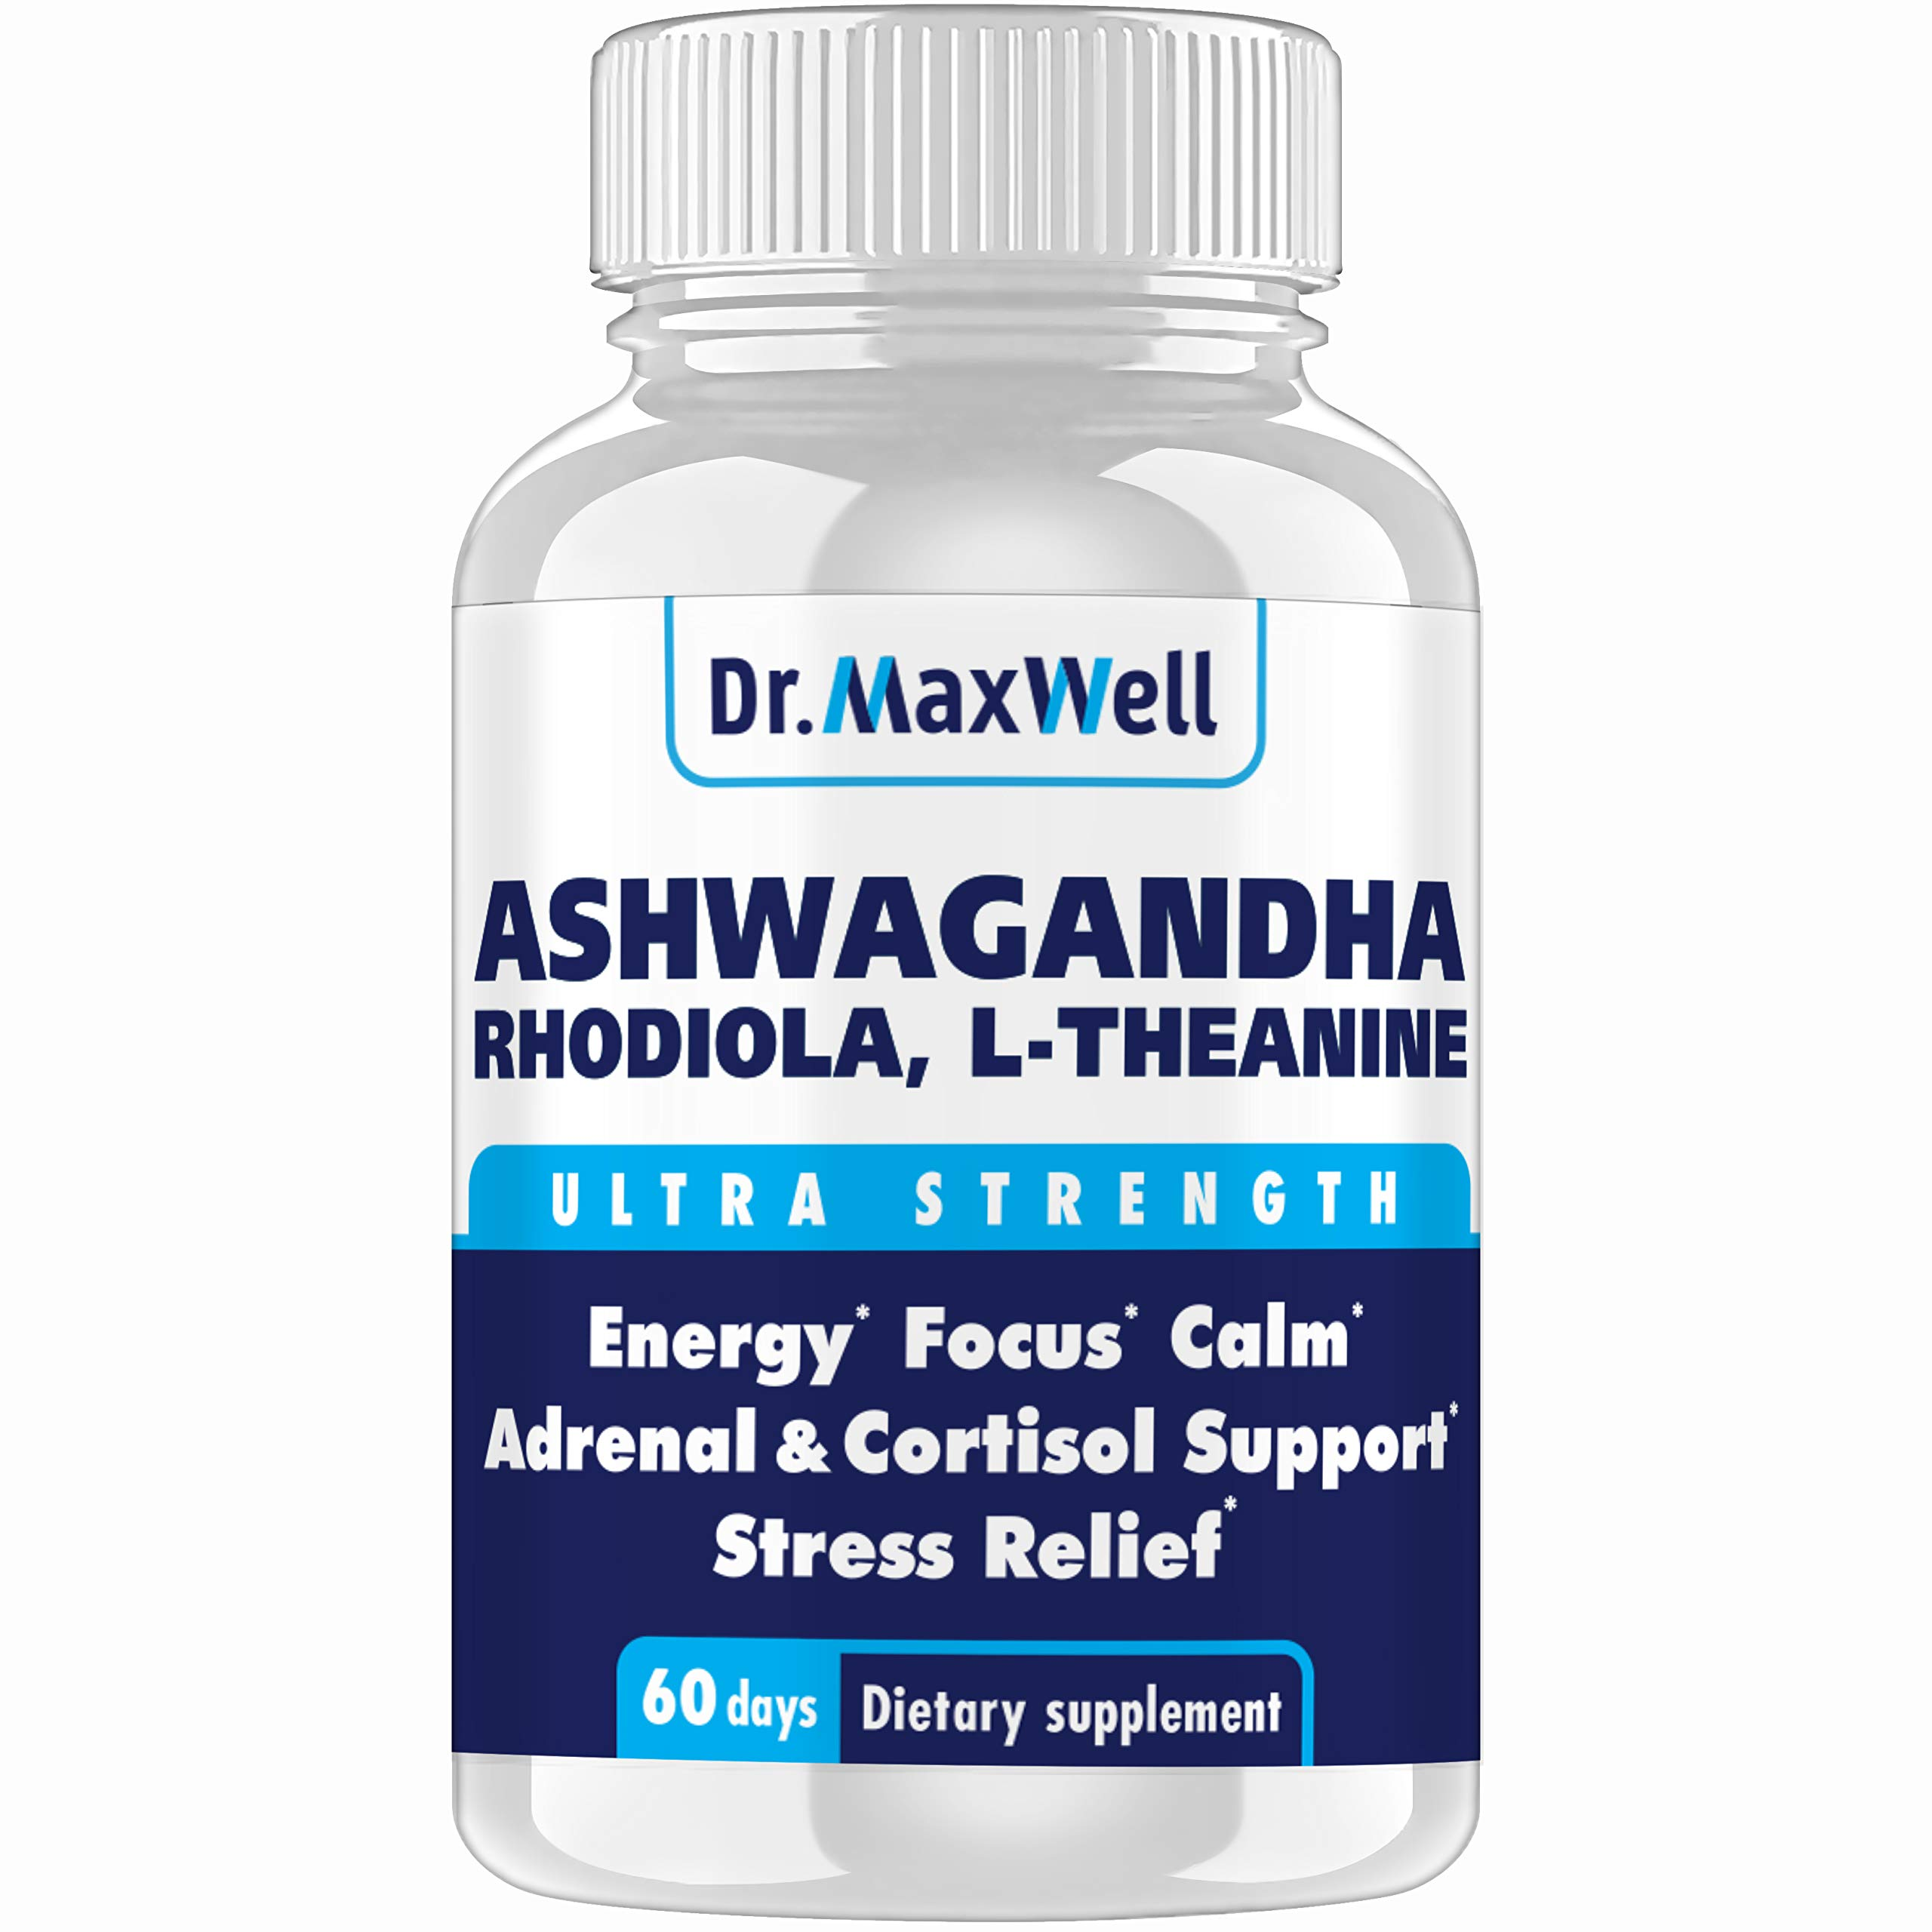 Dr.Maxwell Cortisol Manager, Adrenal, Thyroid Support. Clinically Proven Amounts, 2X More vs. Competitors, 120 Pills, USA, Money Back Guarantee, Adaptogen Stress Relief, Relaxation, Mood. No Fillers by Dr. Maxwell